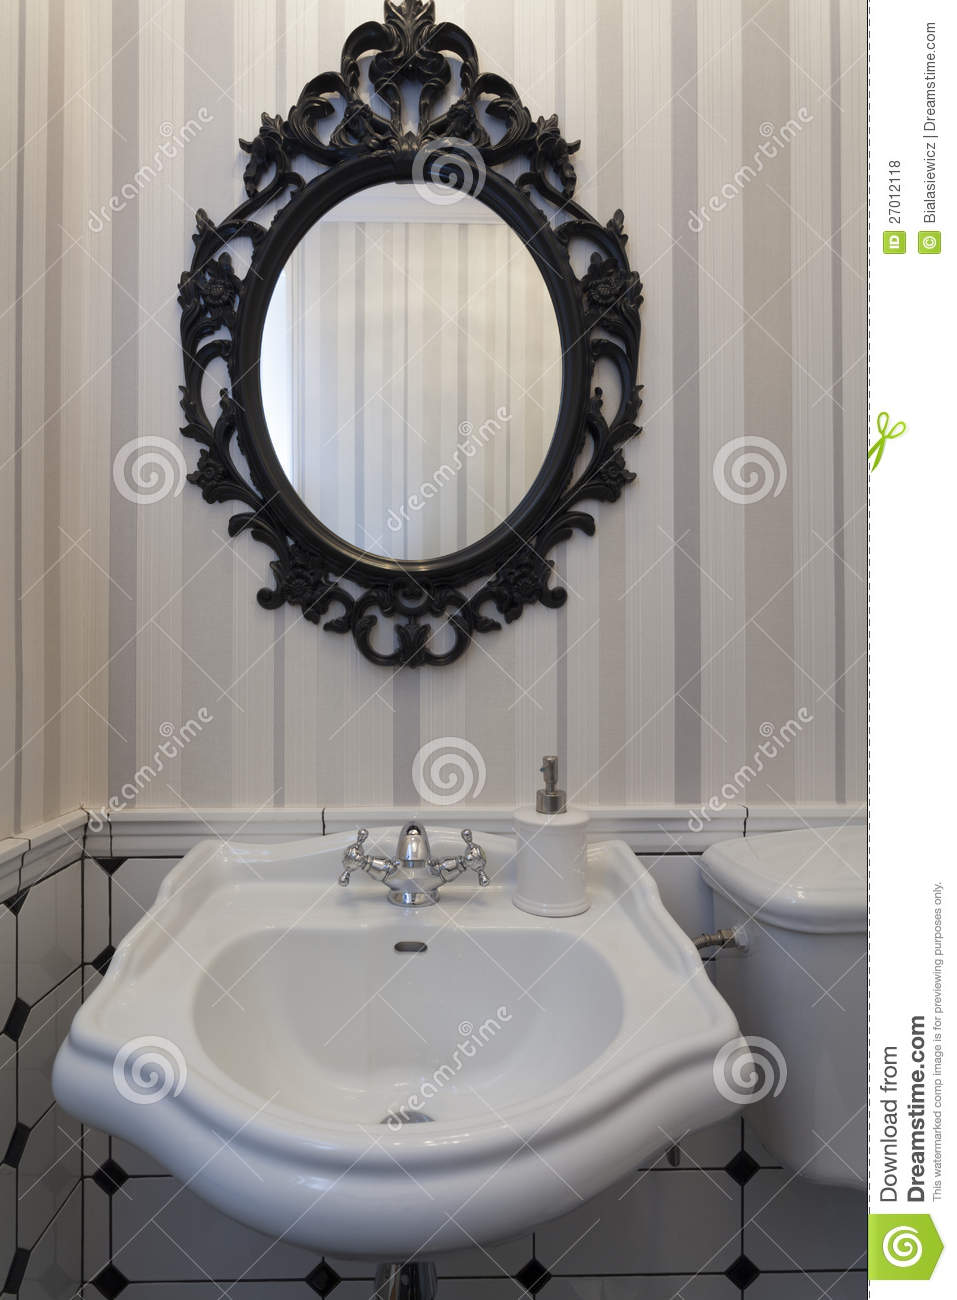 Vintage Toilet With A Mirror Stock Photo Image 27012118